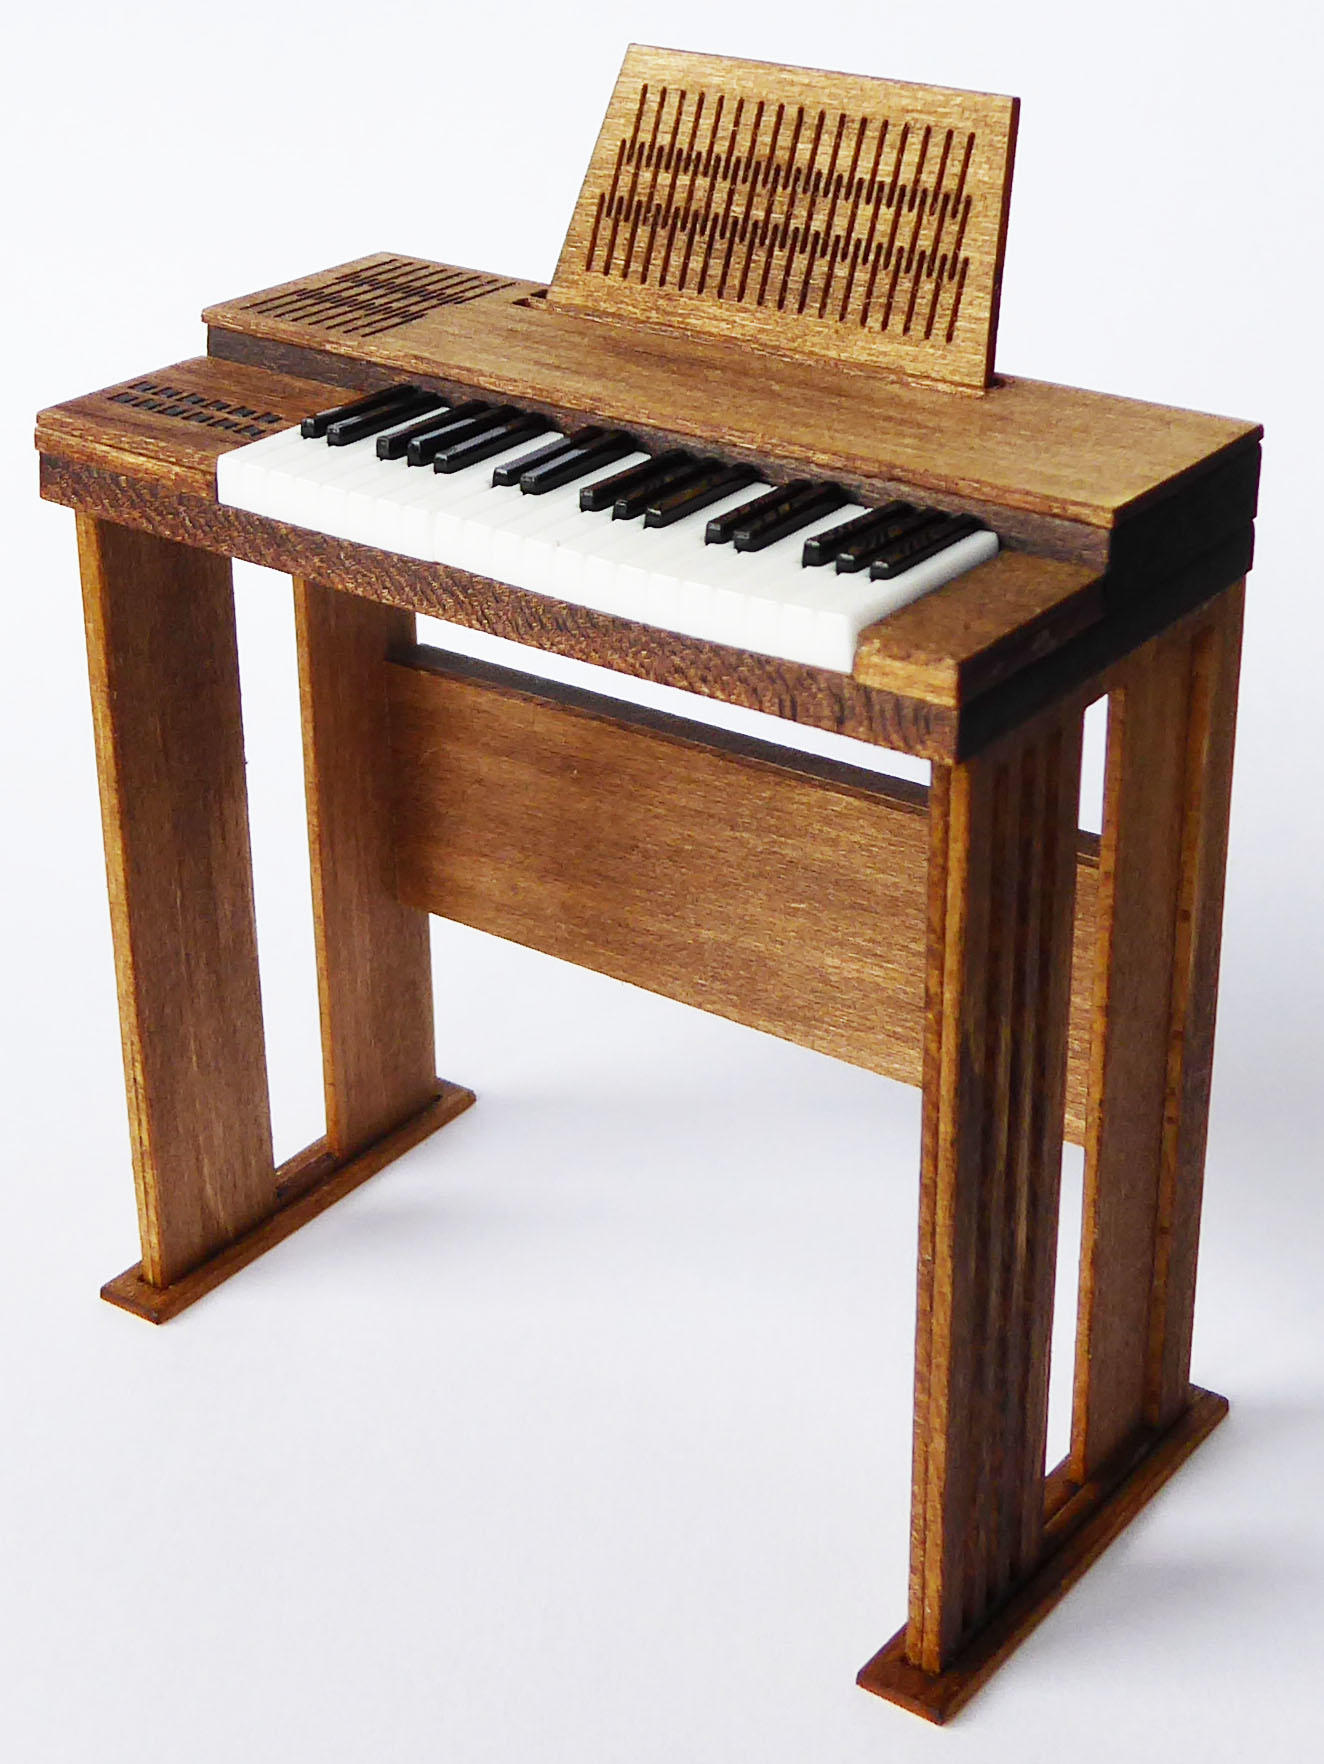 1/48th scale 70s Retro Organ Keyboard Kit